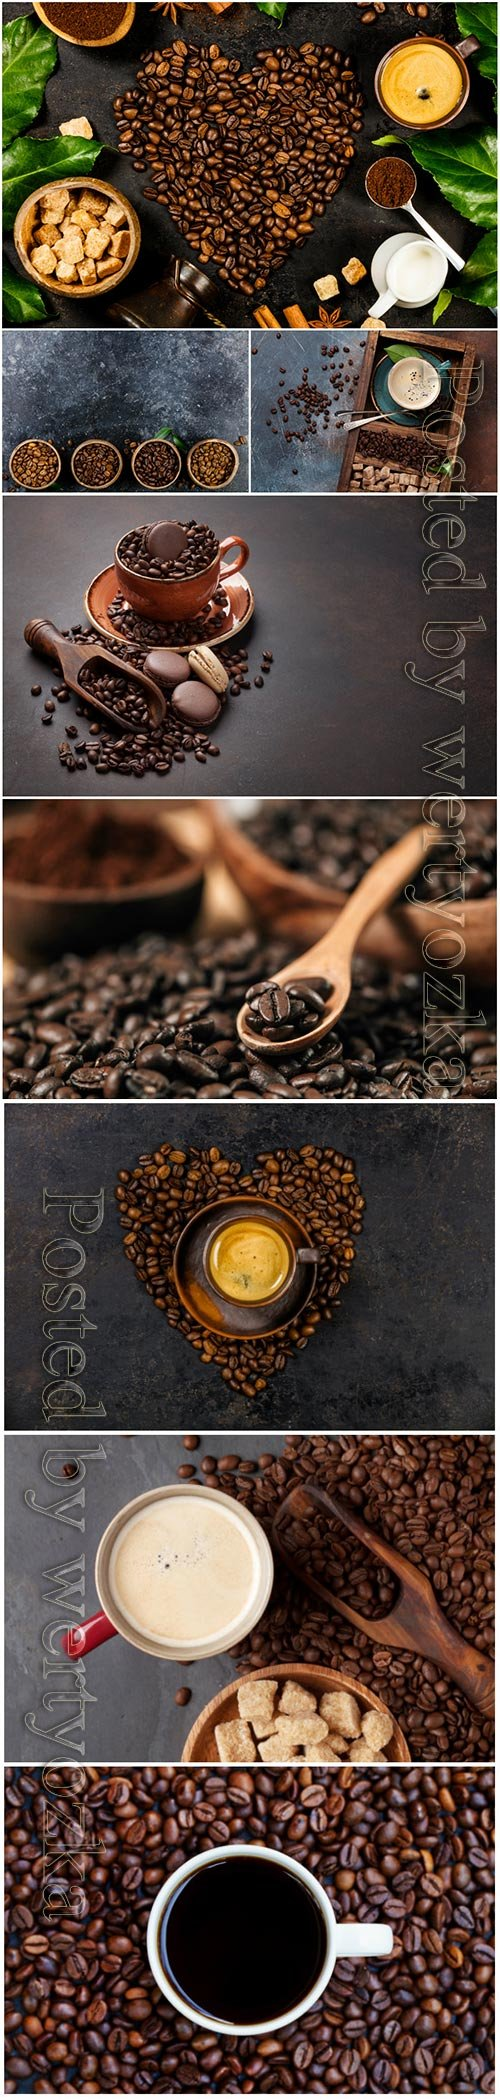 Coffee and coffee beans stock photo